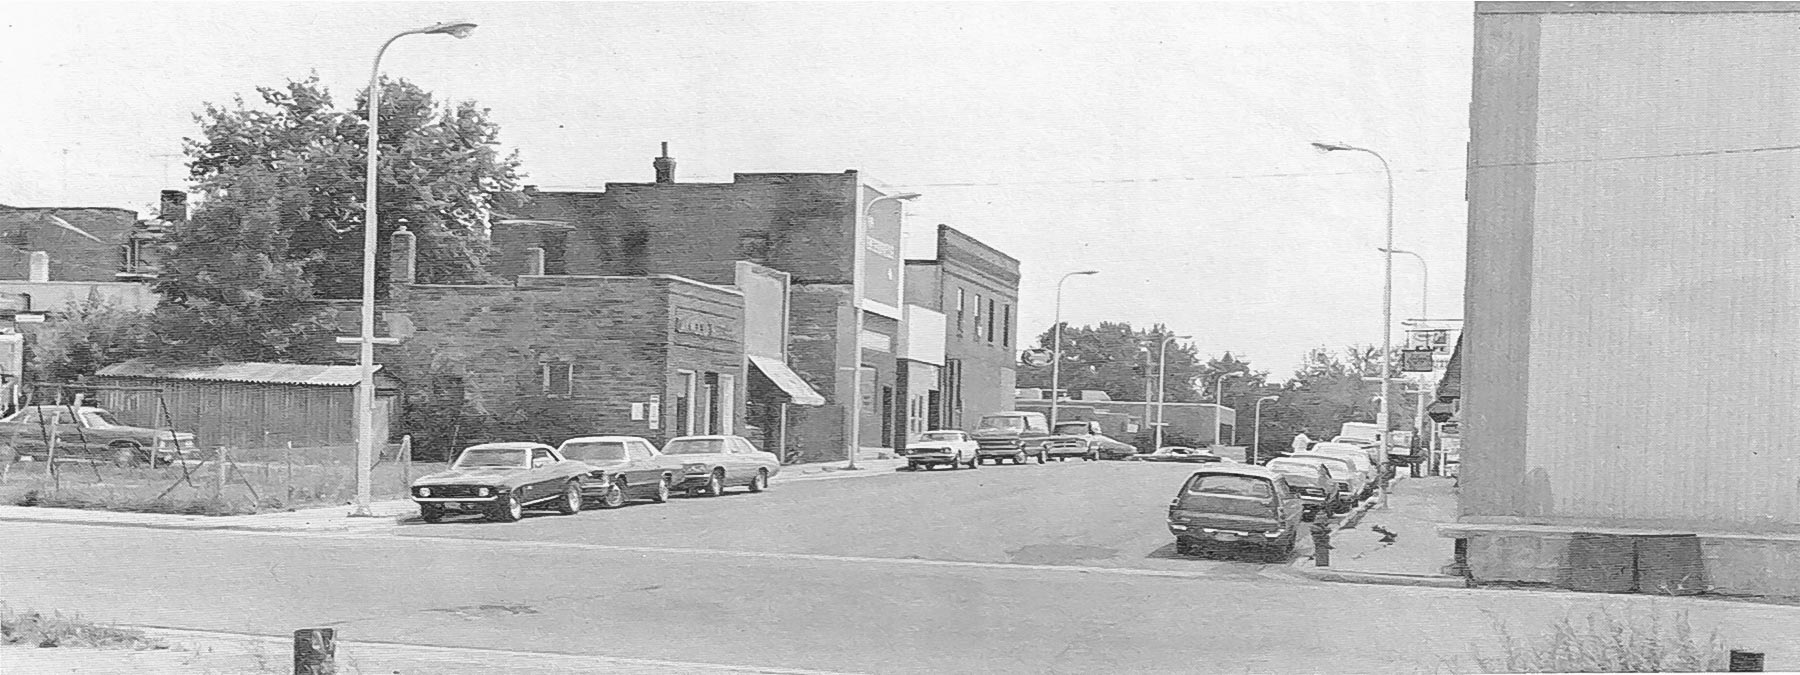 Picture of Millard Avenue looking south fro rail road tracks, 1976.